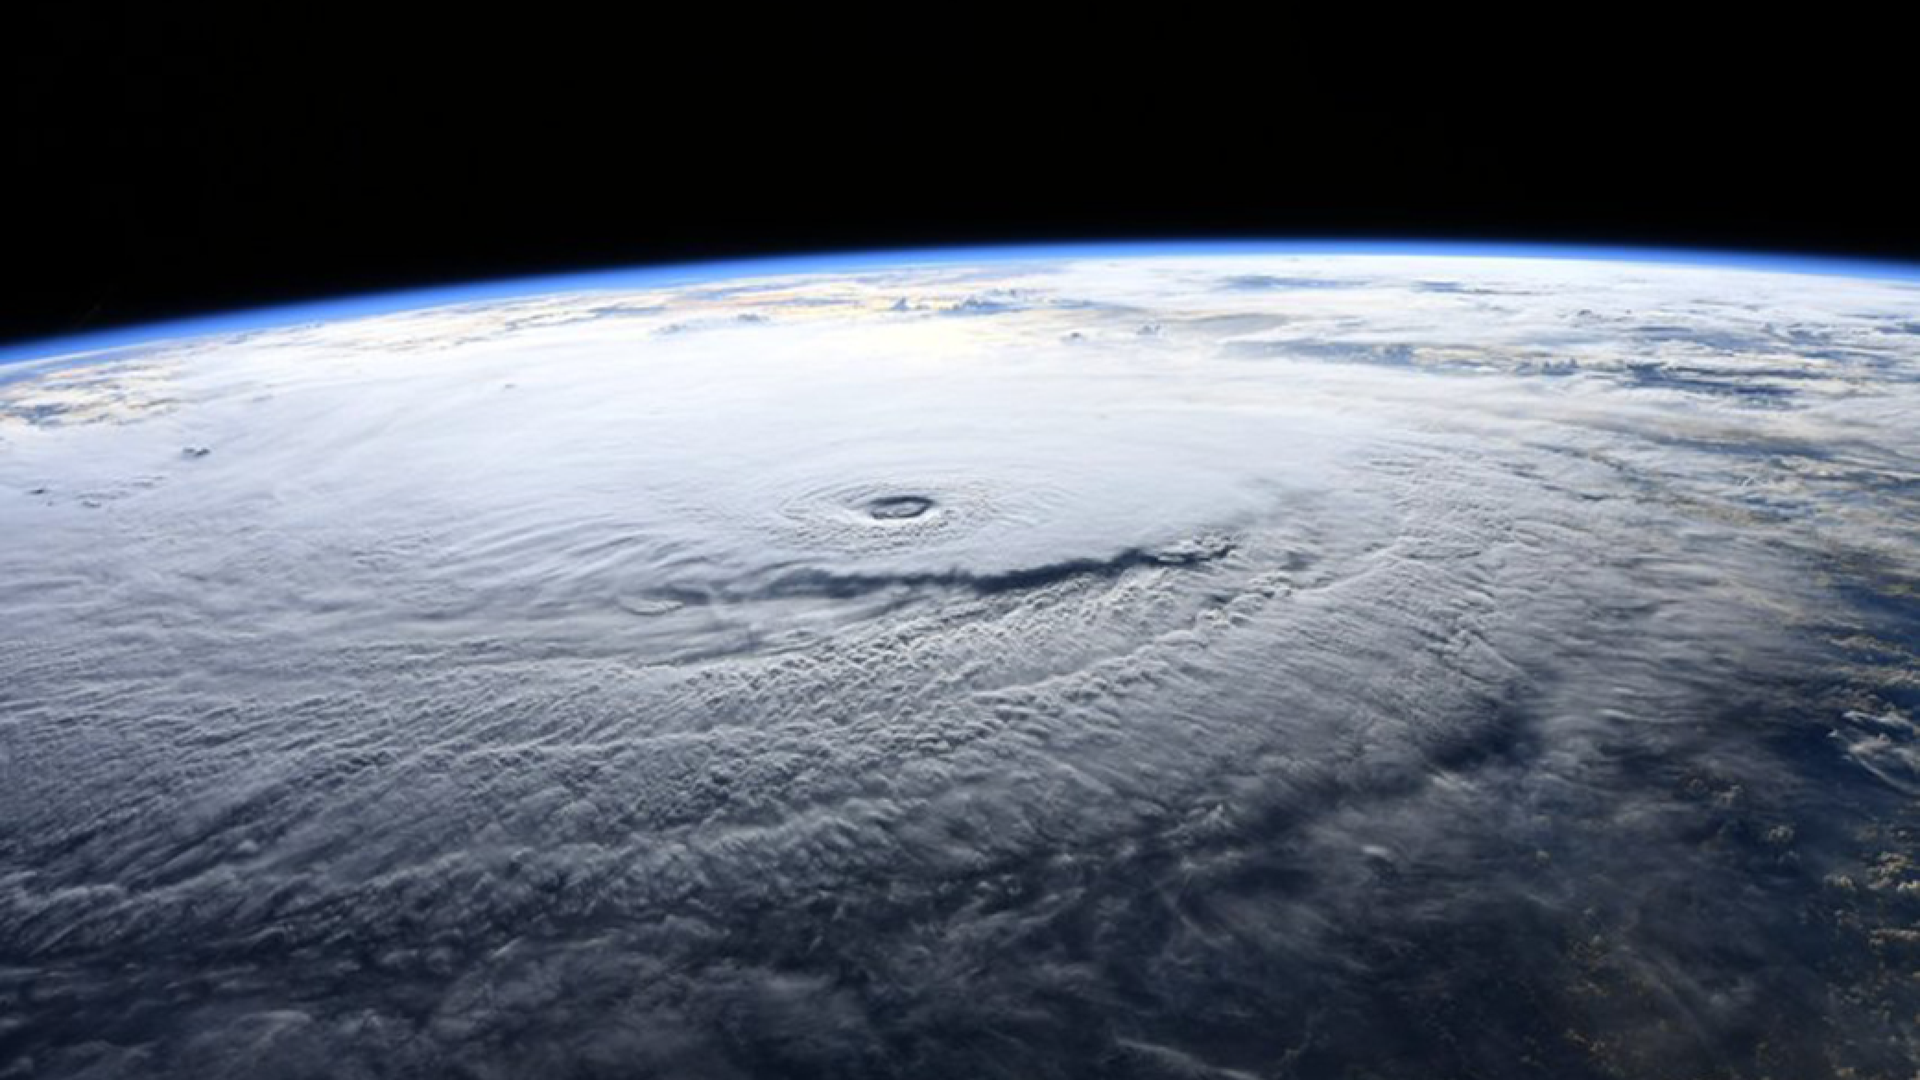 NASA astronaut Ricky Arnold photographed Hurricane Lane during a flyover on Aug. 22, 2018.